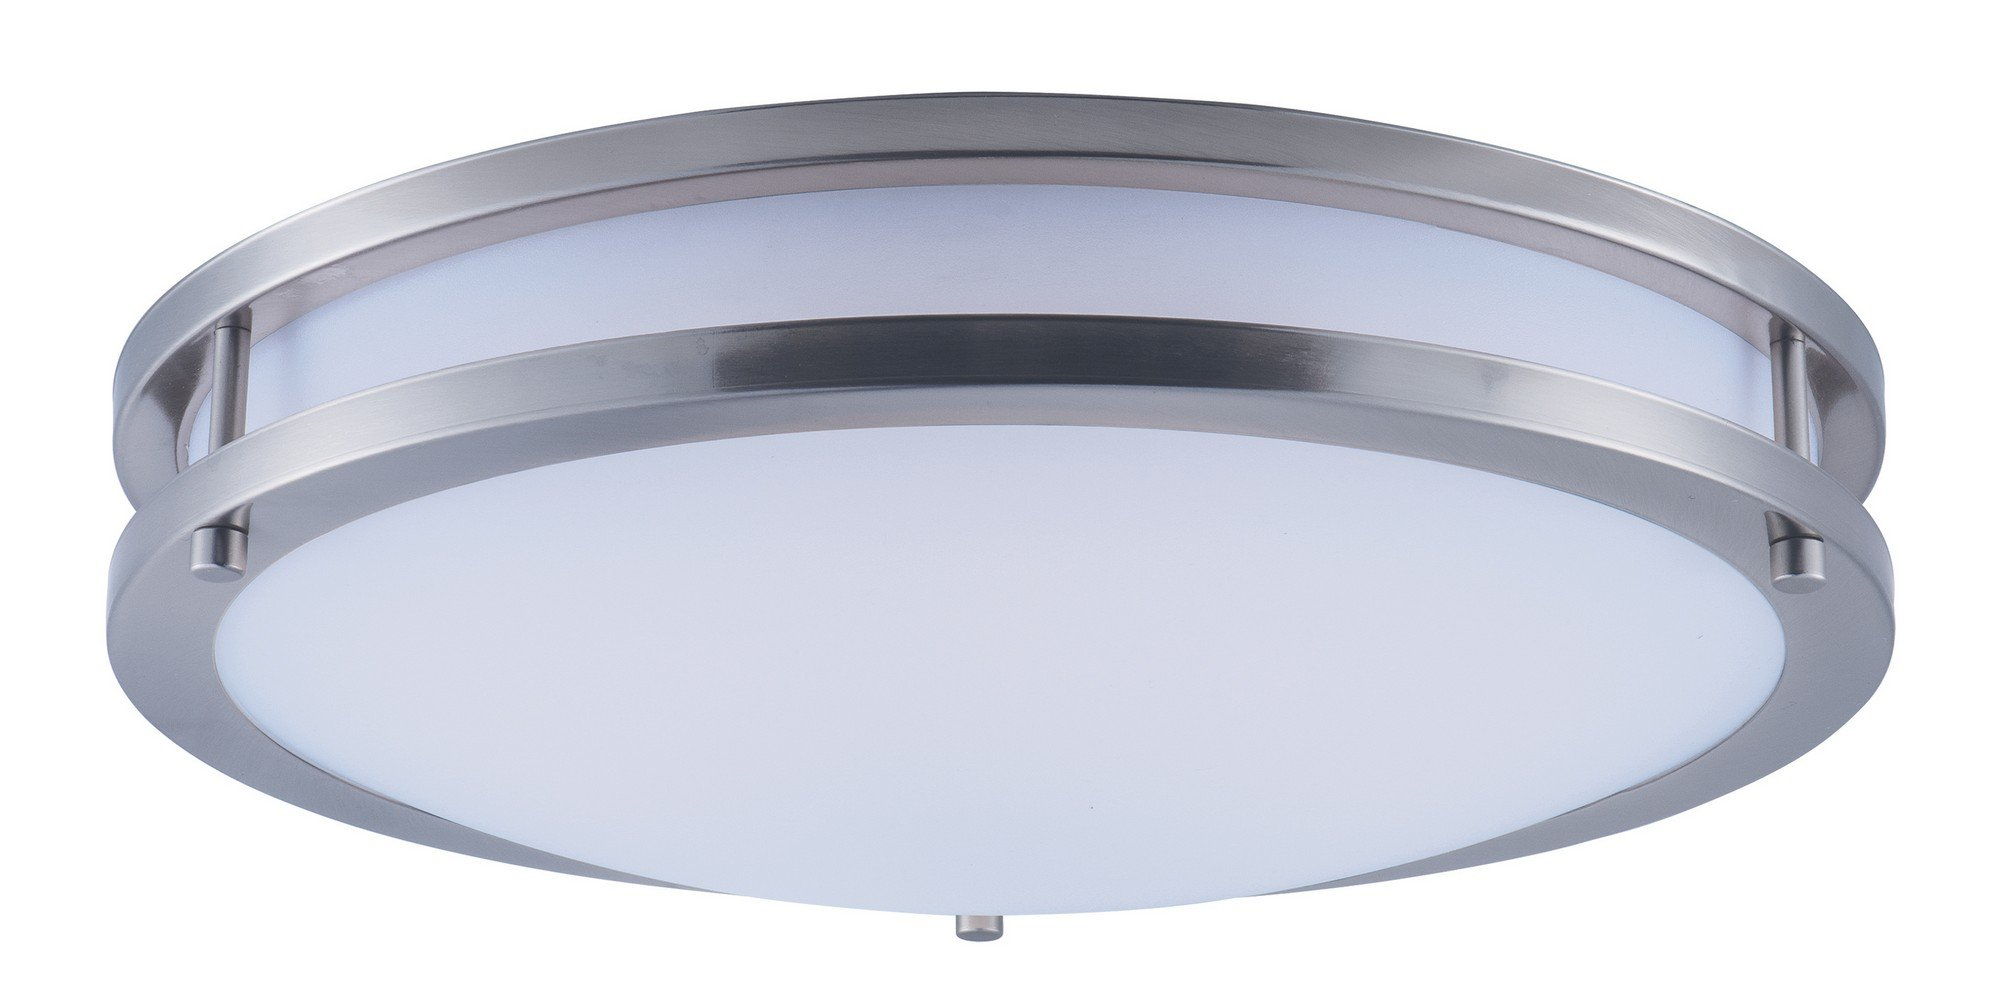 Maxim 55544WTSN Linear LED Flush Mount, Satin Nickel Finish, White Glass, LED Bulb , 40W Max., Wet Safety Rating, Standard Dimmable, Glass Shade Material, 2016 Rated Lumens